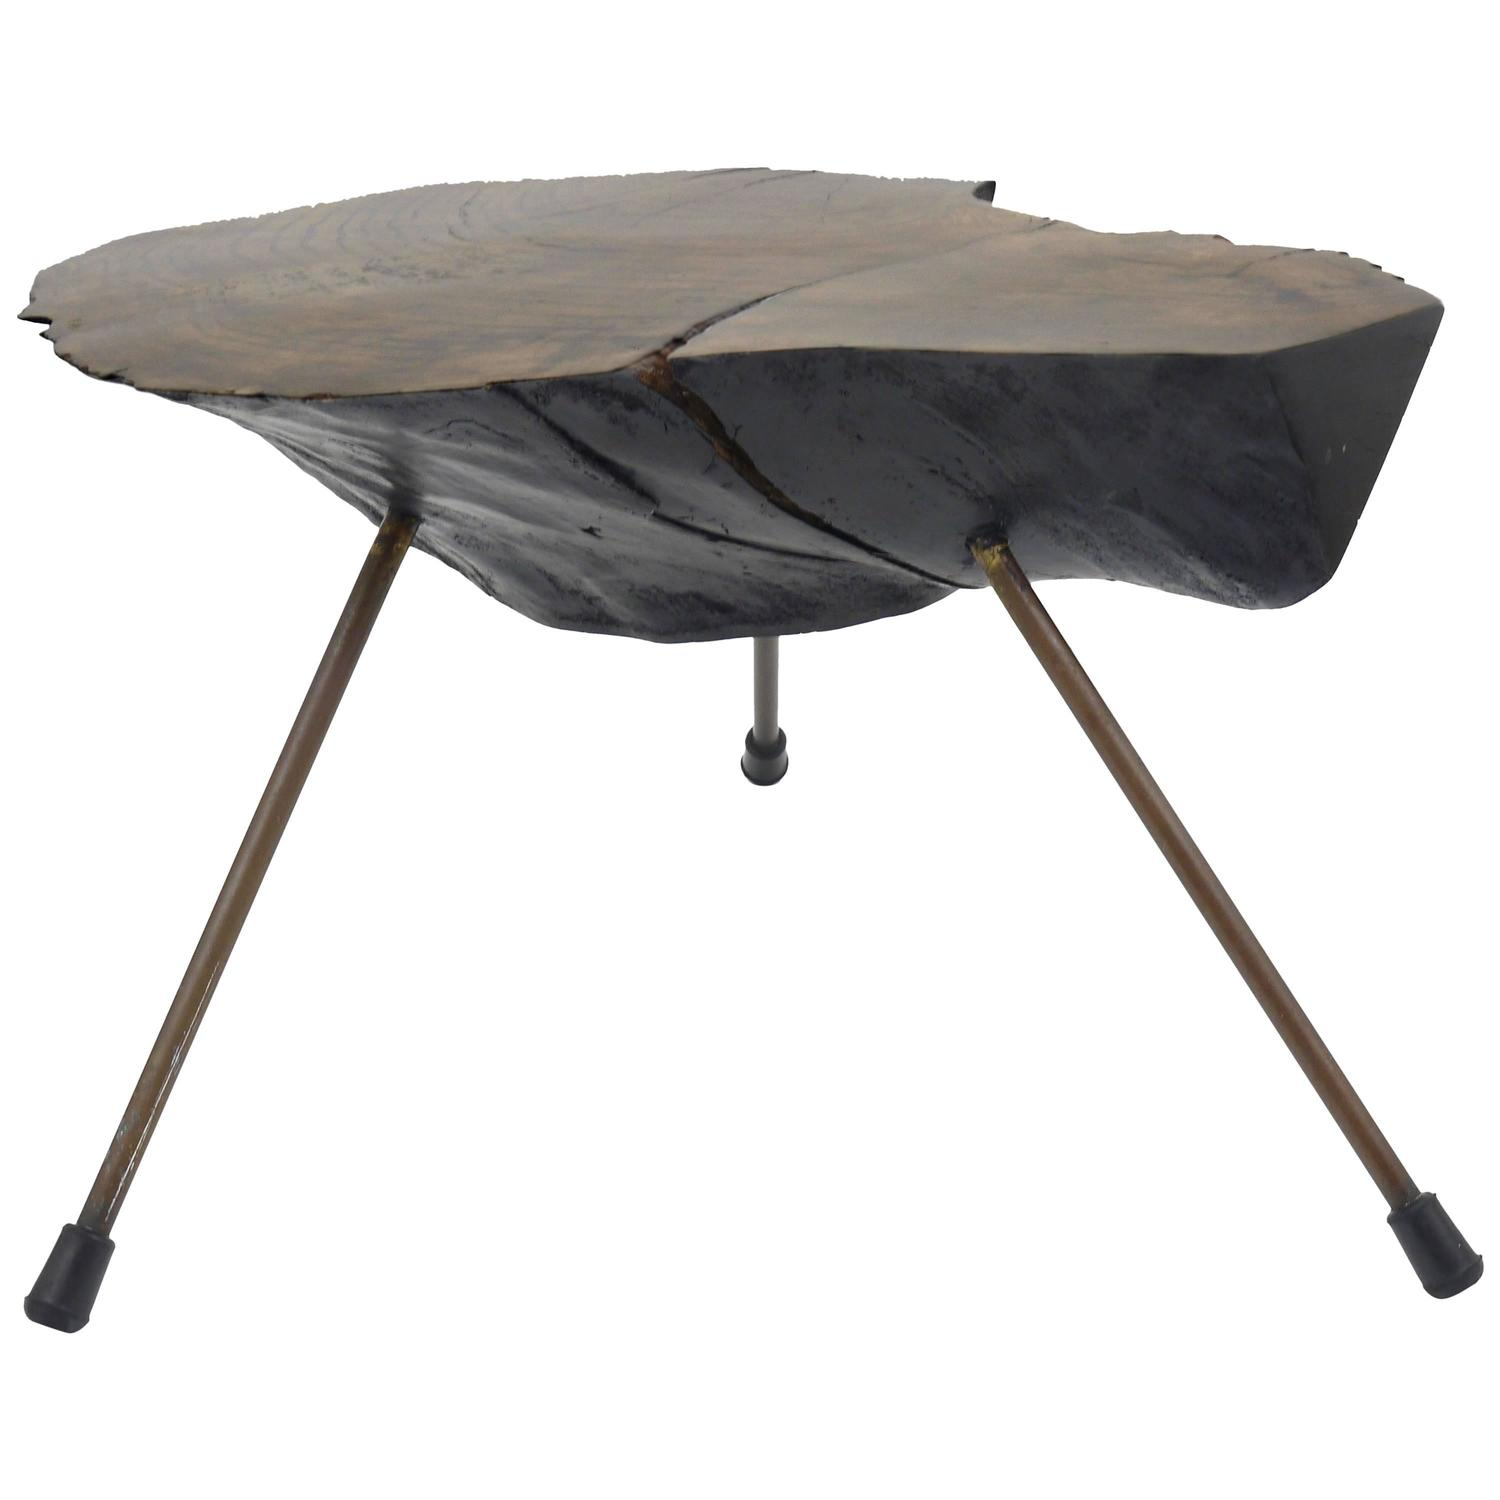 Mid Century Modern Tree Slab Coffee Table For Sale At 1stdibs: Carl Auböck Tree Trunk Table, Austria, 1950s For Sale At